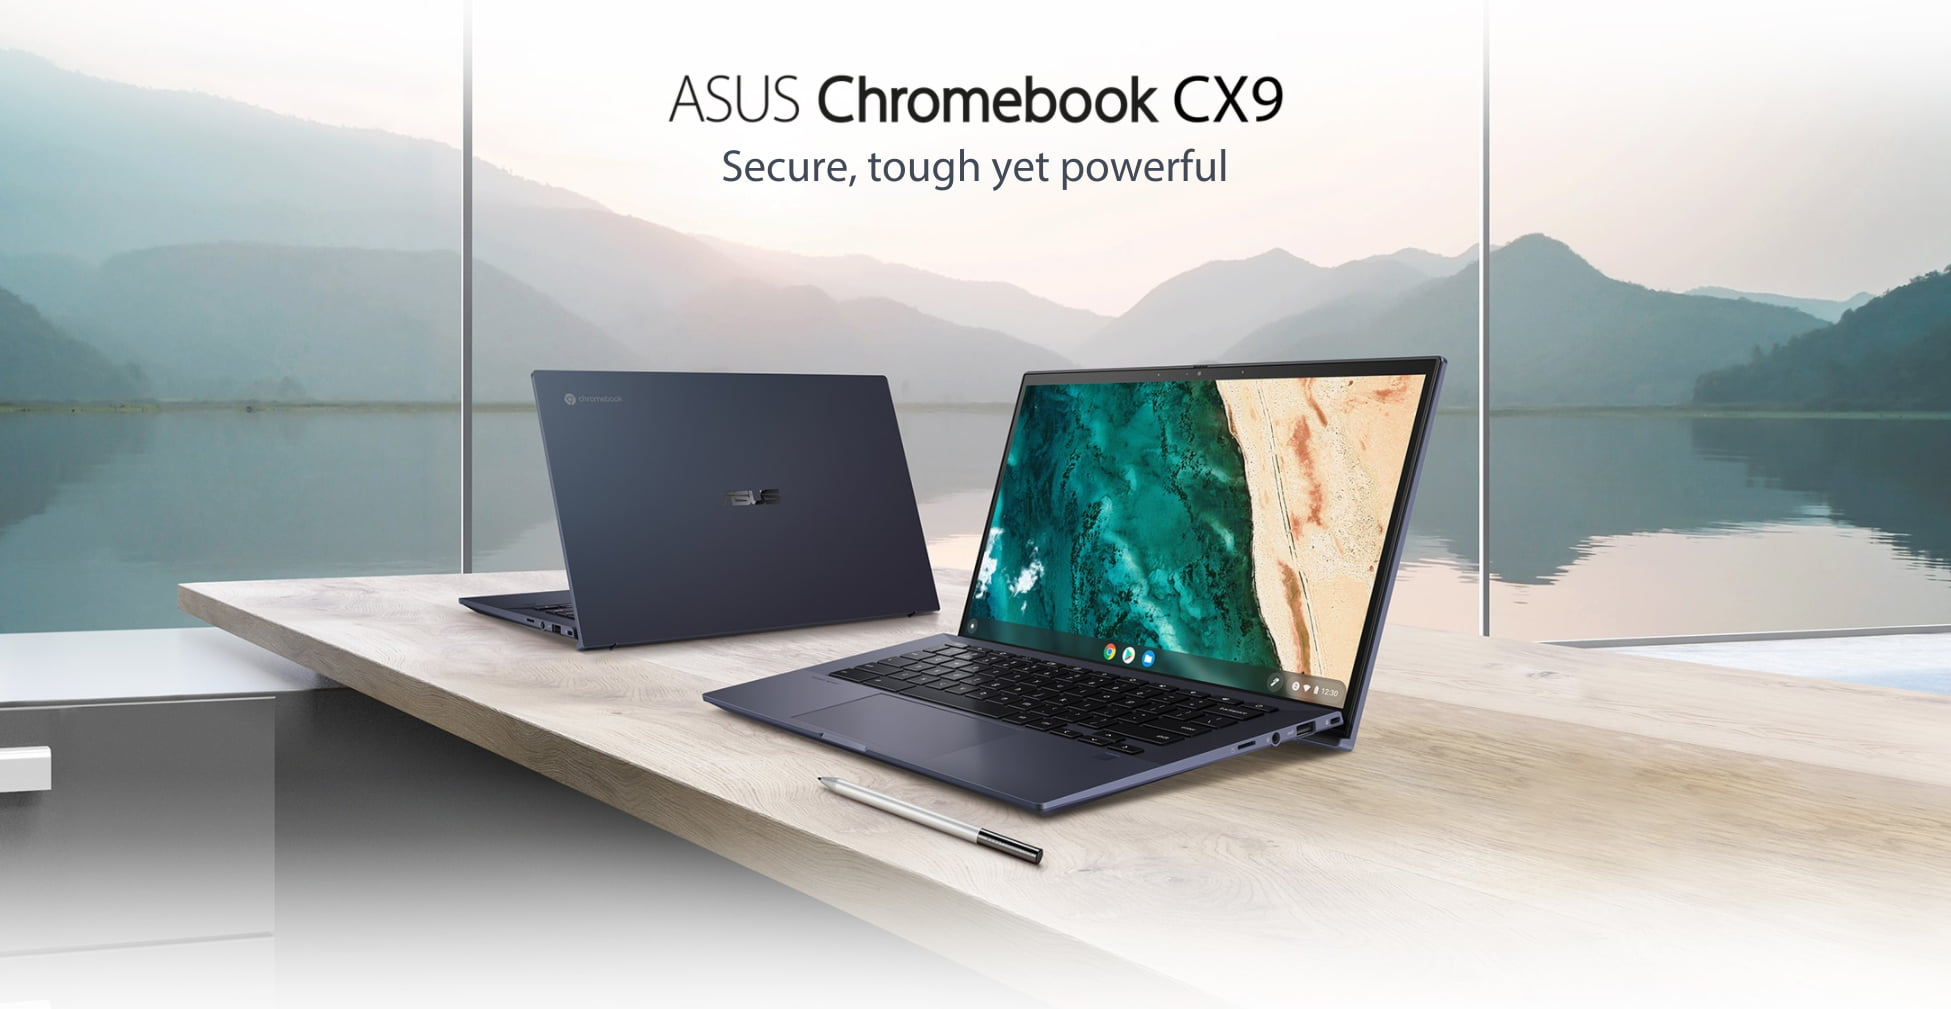 All 3 new ASUS Chromebooks get awesome landing pages